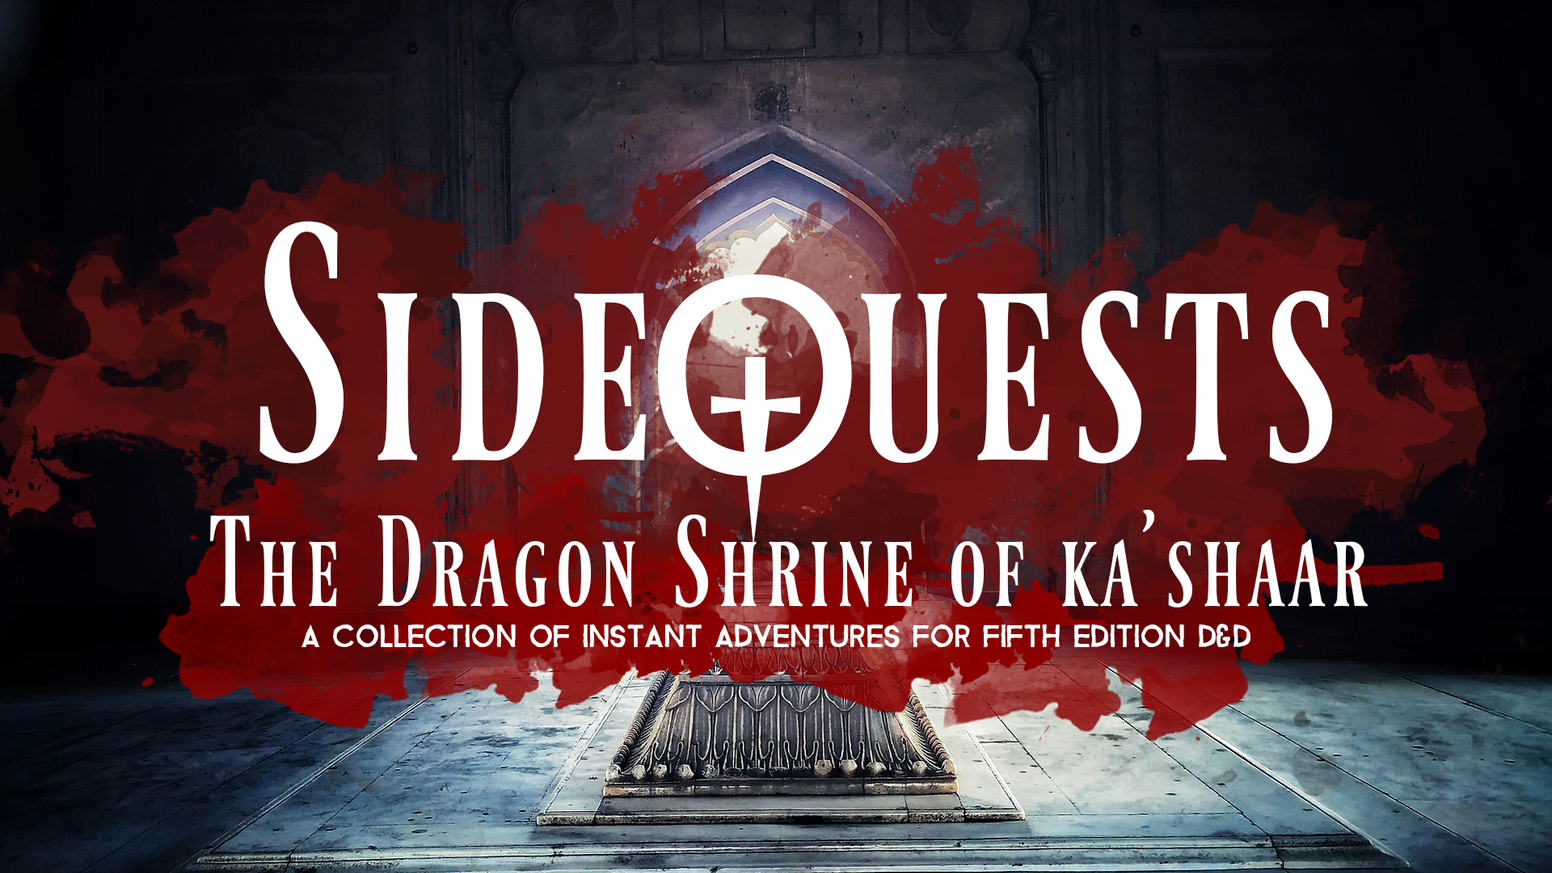 A brand new SideQuests adventure for fifth edition Dungeons & Dragons.